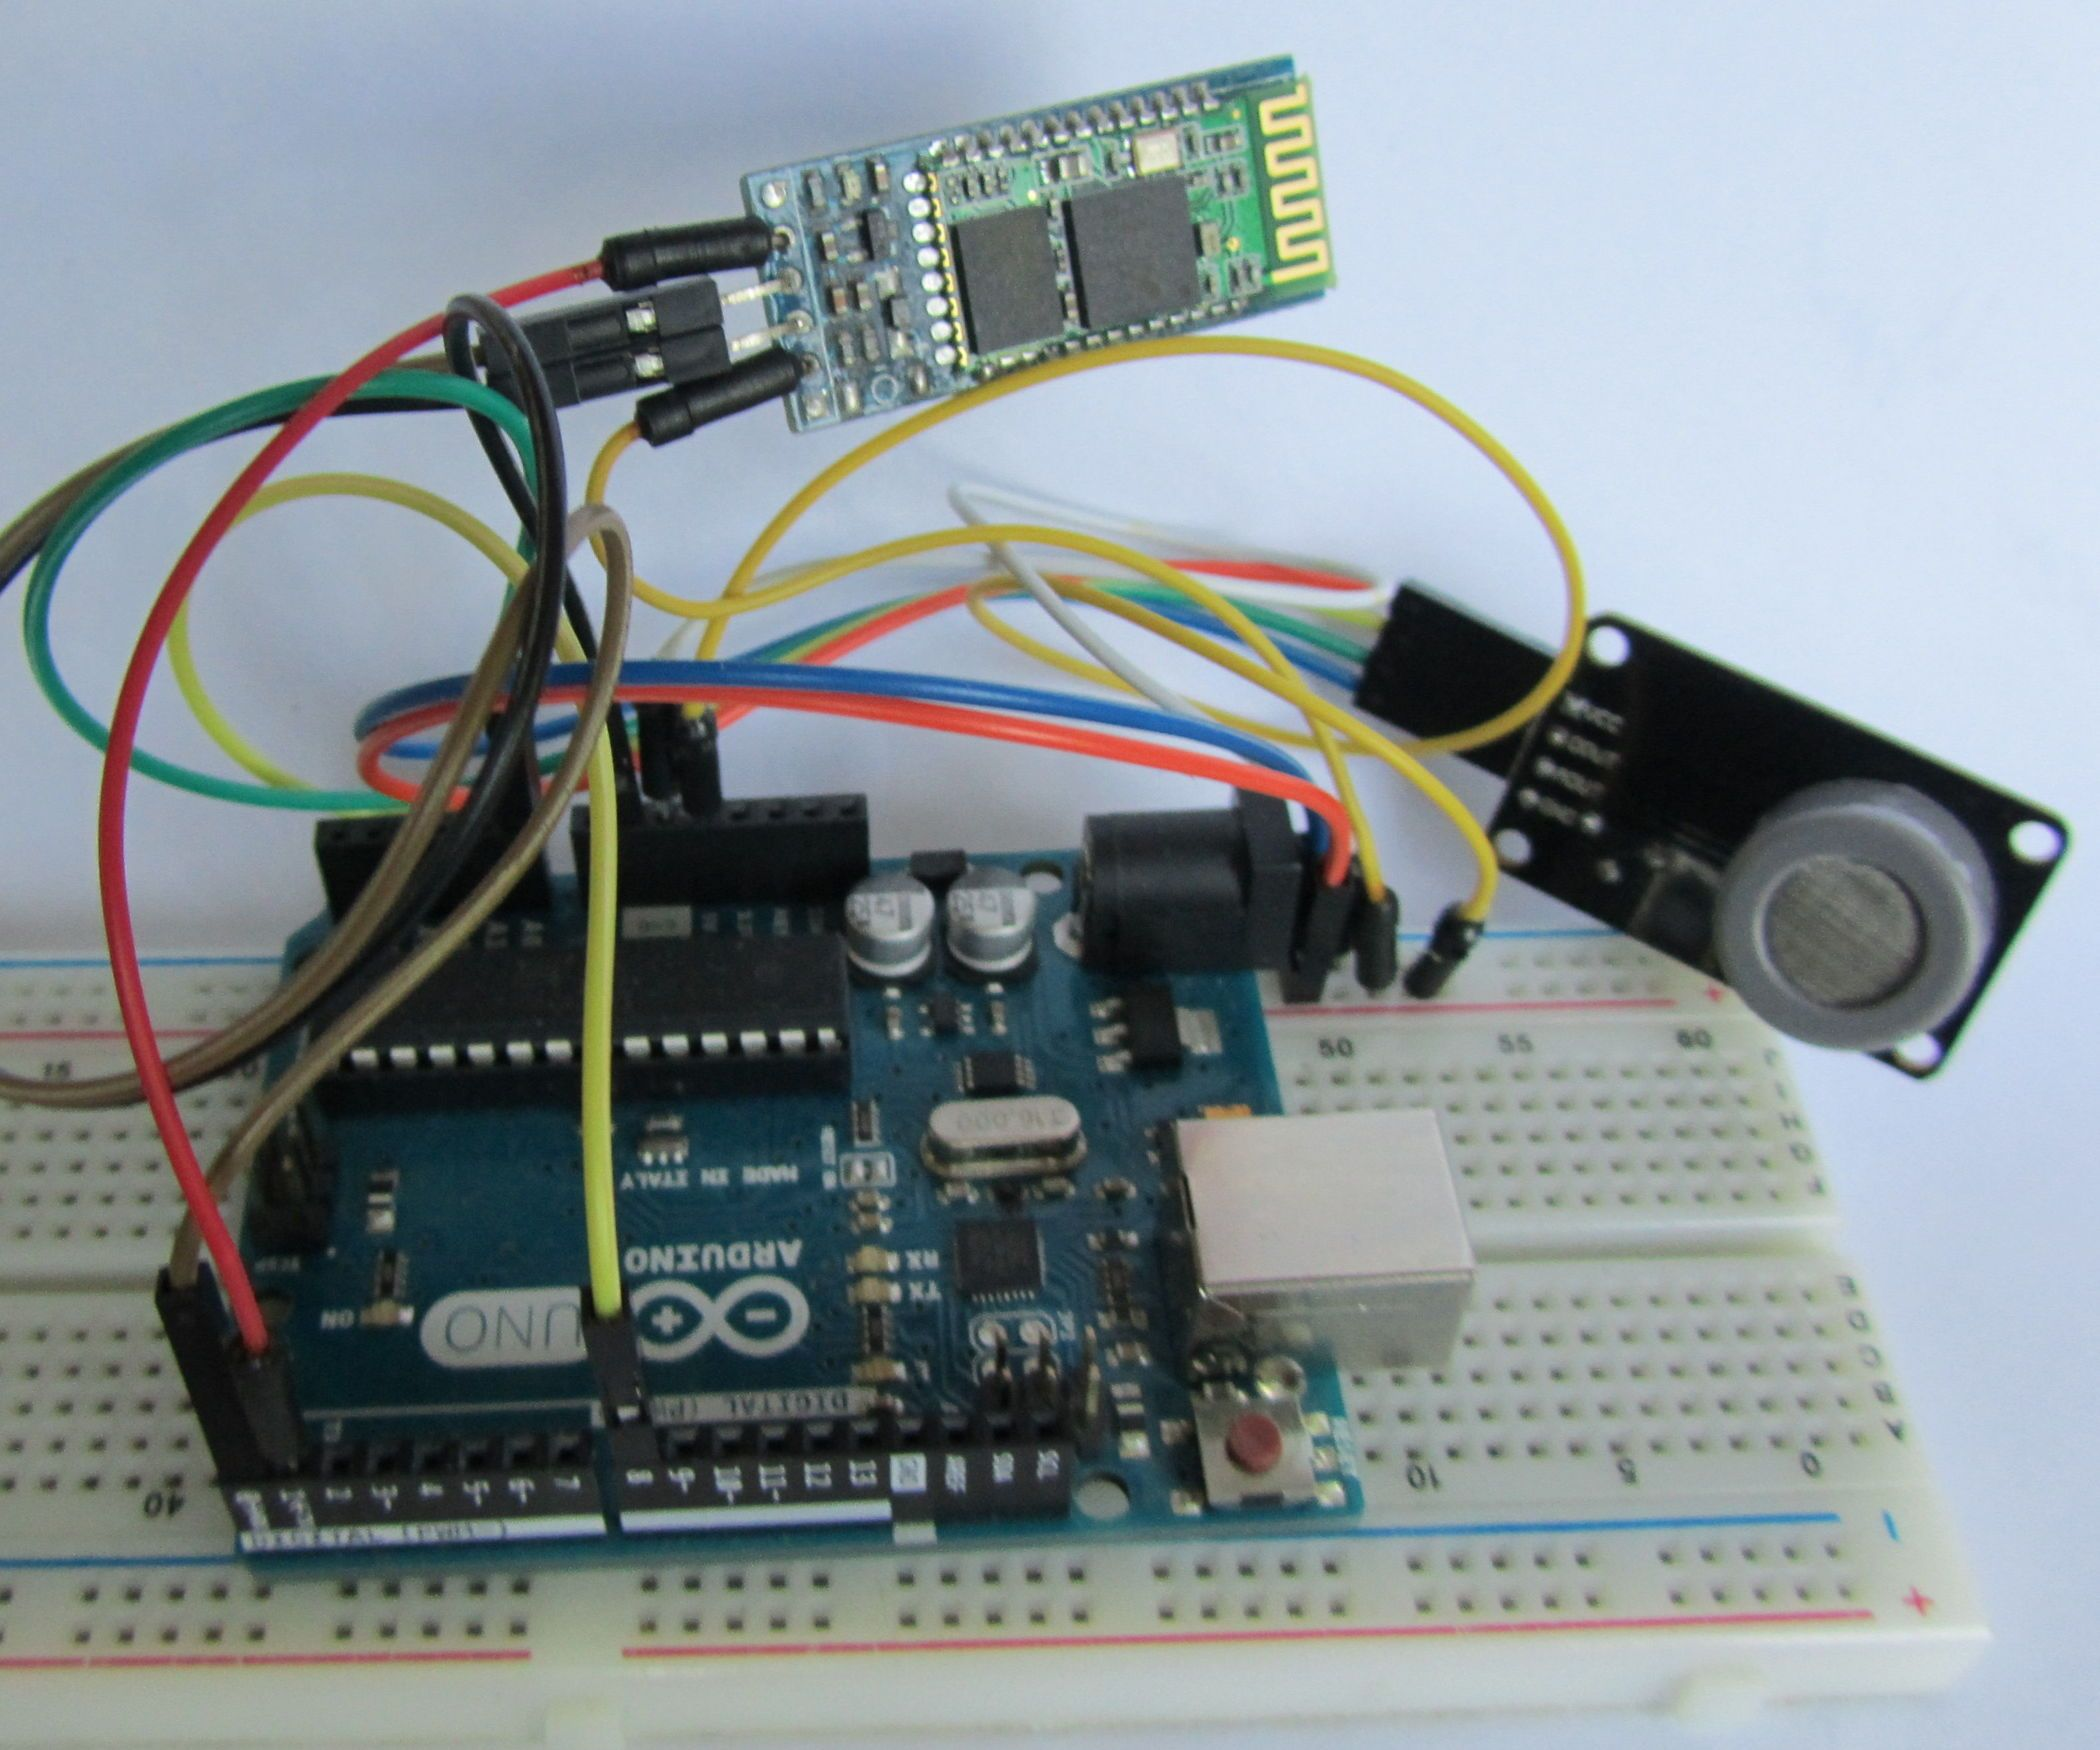 How To Use Mq7 Gas Sensors Whith Arduino Android App Raspberry Pi The Sensor We Will In This Circuit Is A Tcs3200 Color Via Bluetooth From